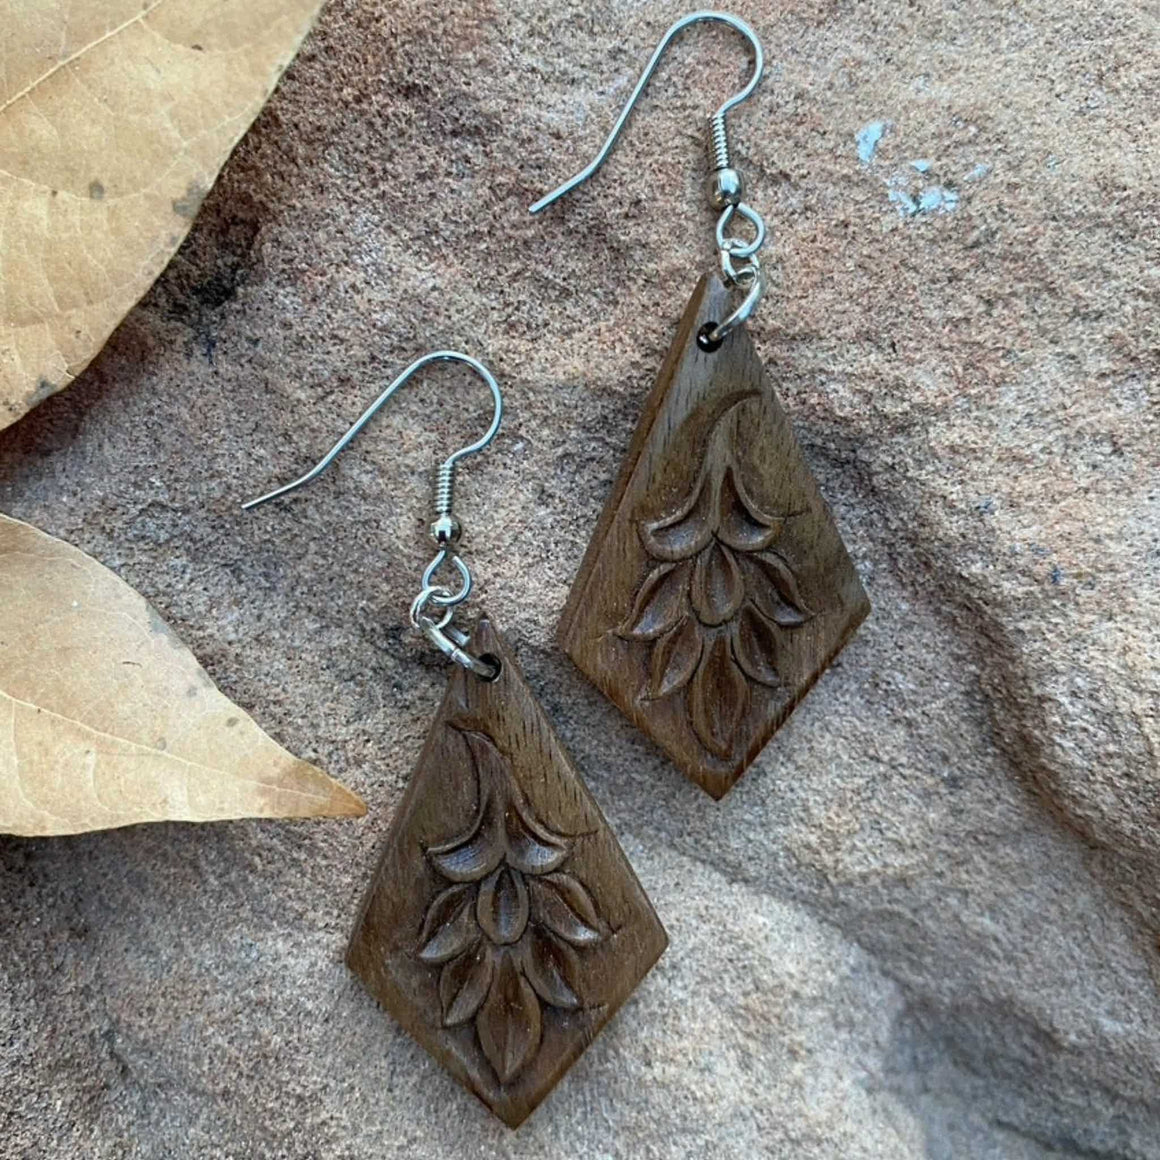 Handcarved walnut earrings in upside-down kite shape with floral patterns and surgical steel ear wires